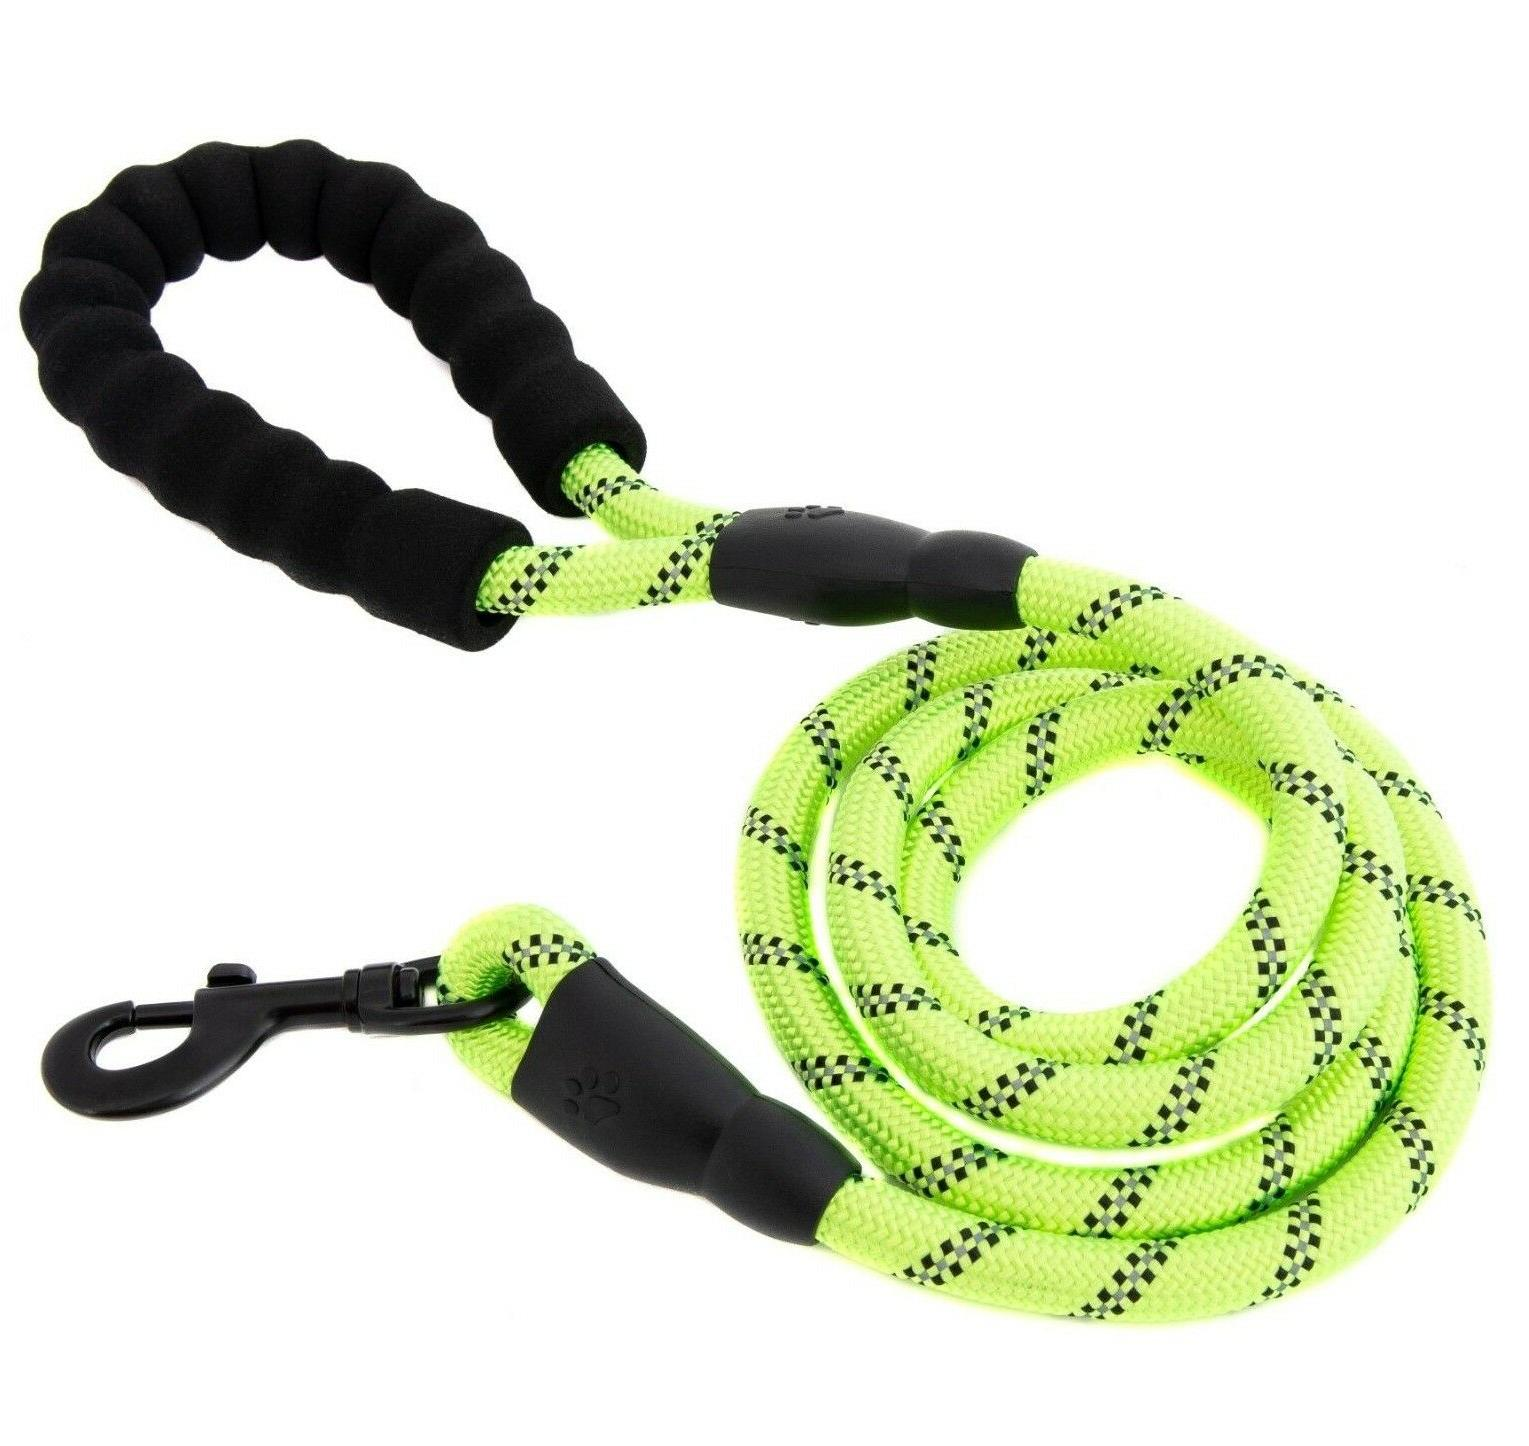 Large Heavy Duty Dog with Handle for Training Walking